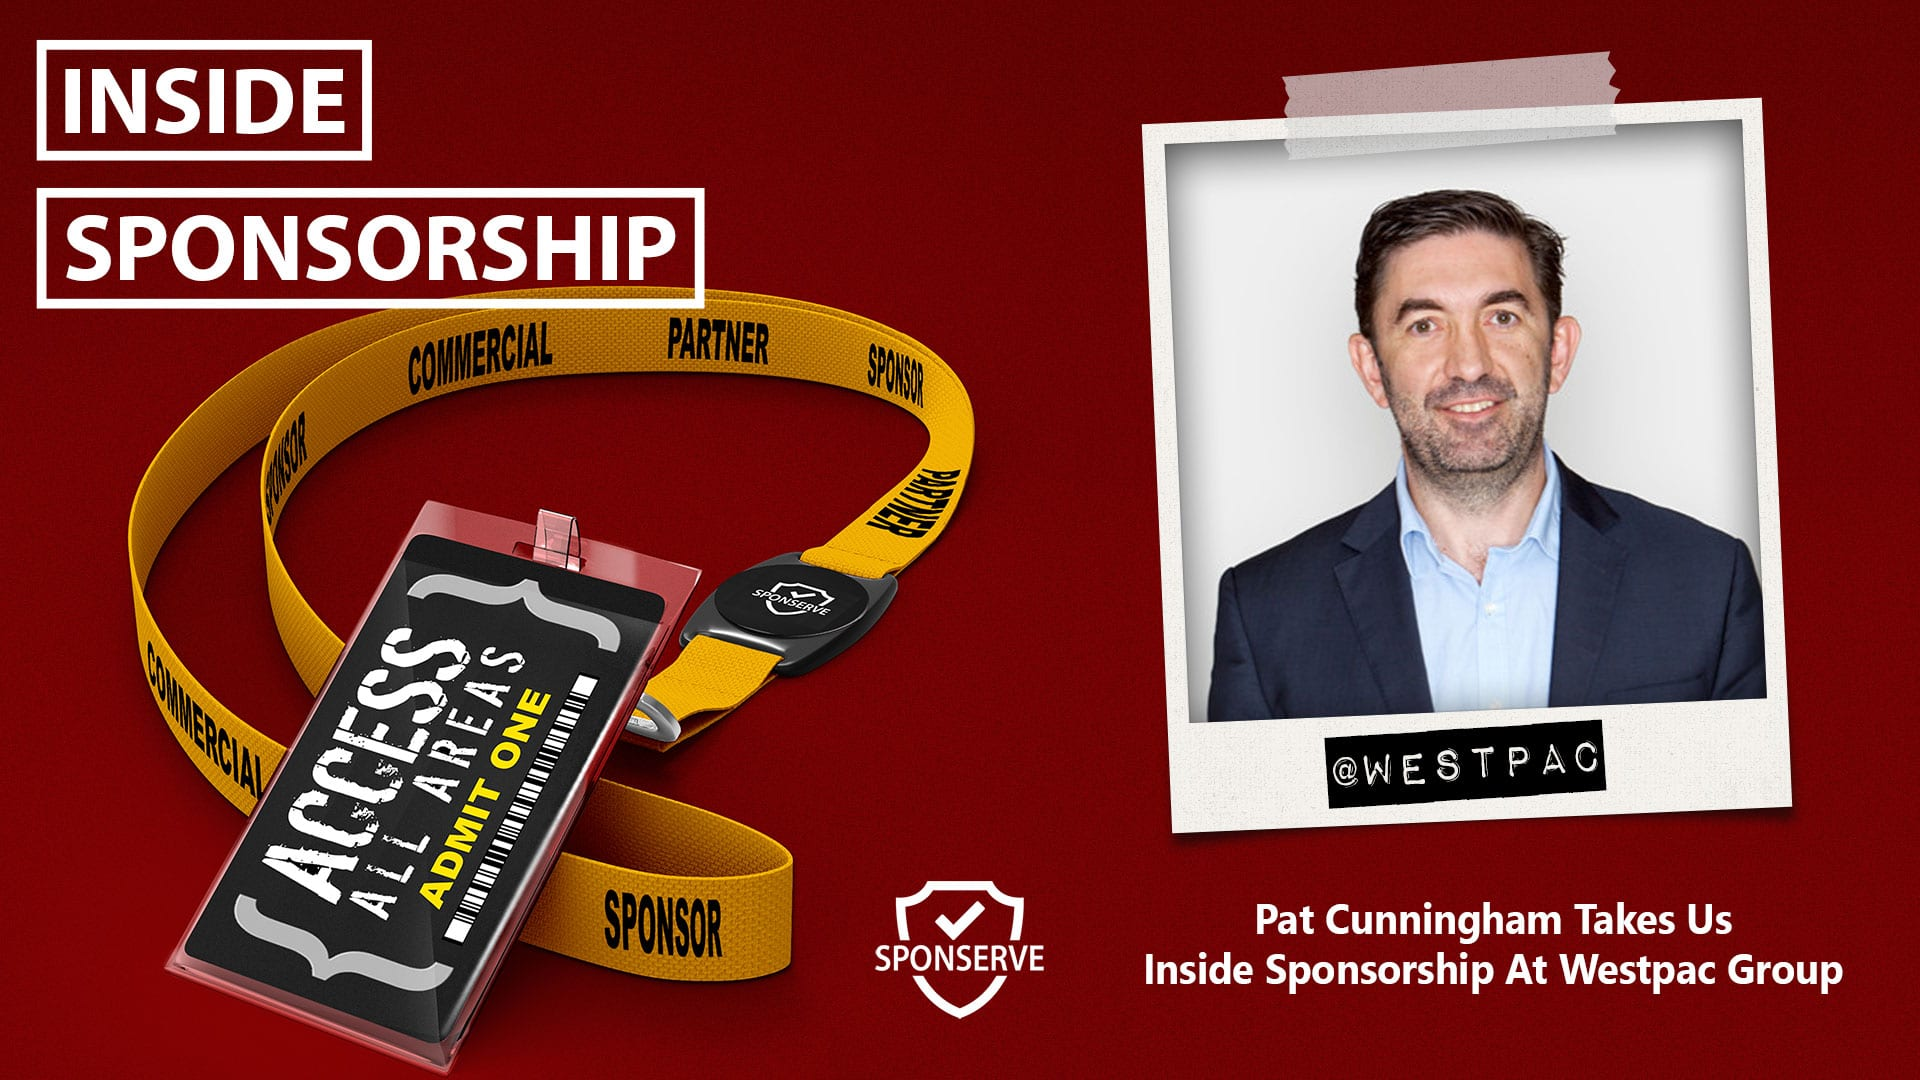 Inside-Sponsorship-Westpac-Group-with-Pat-Cunningham